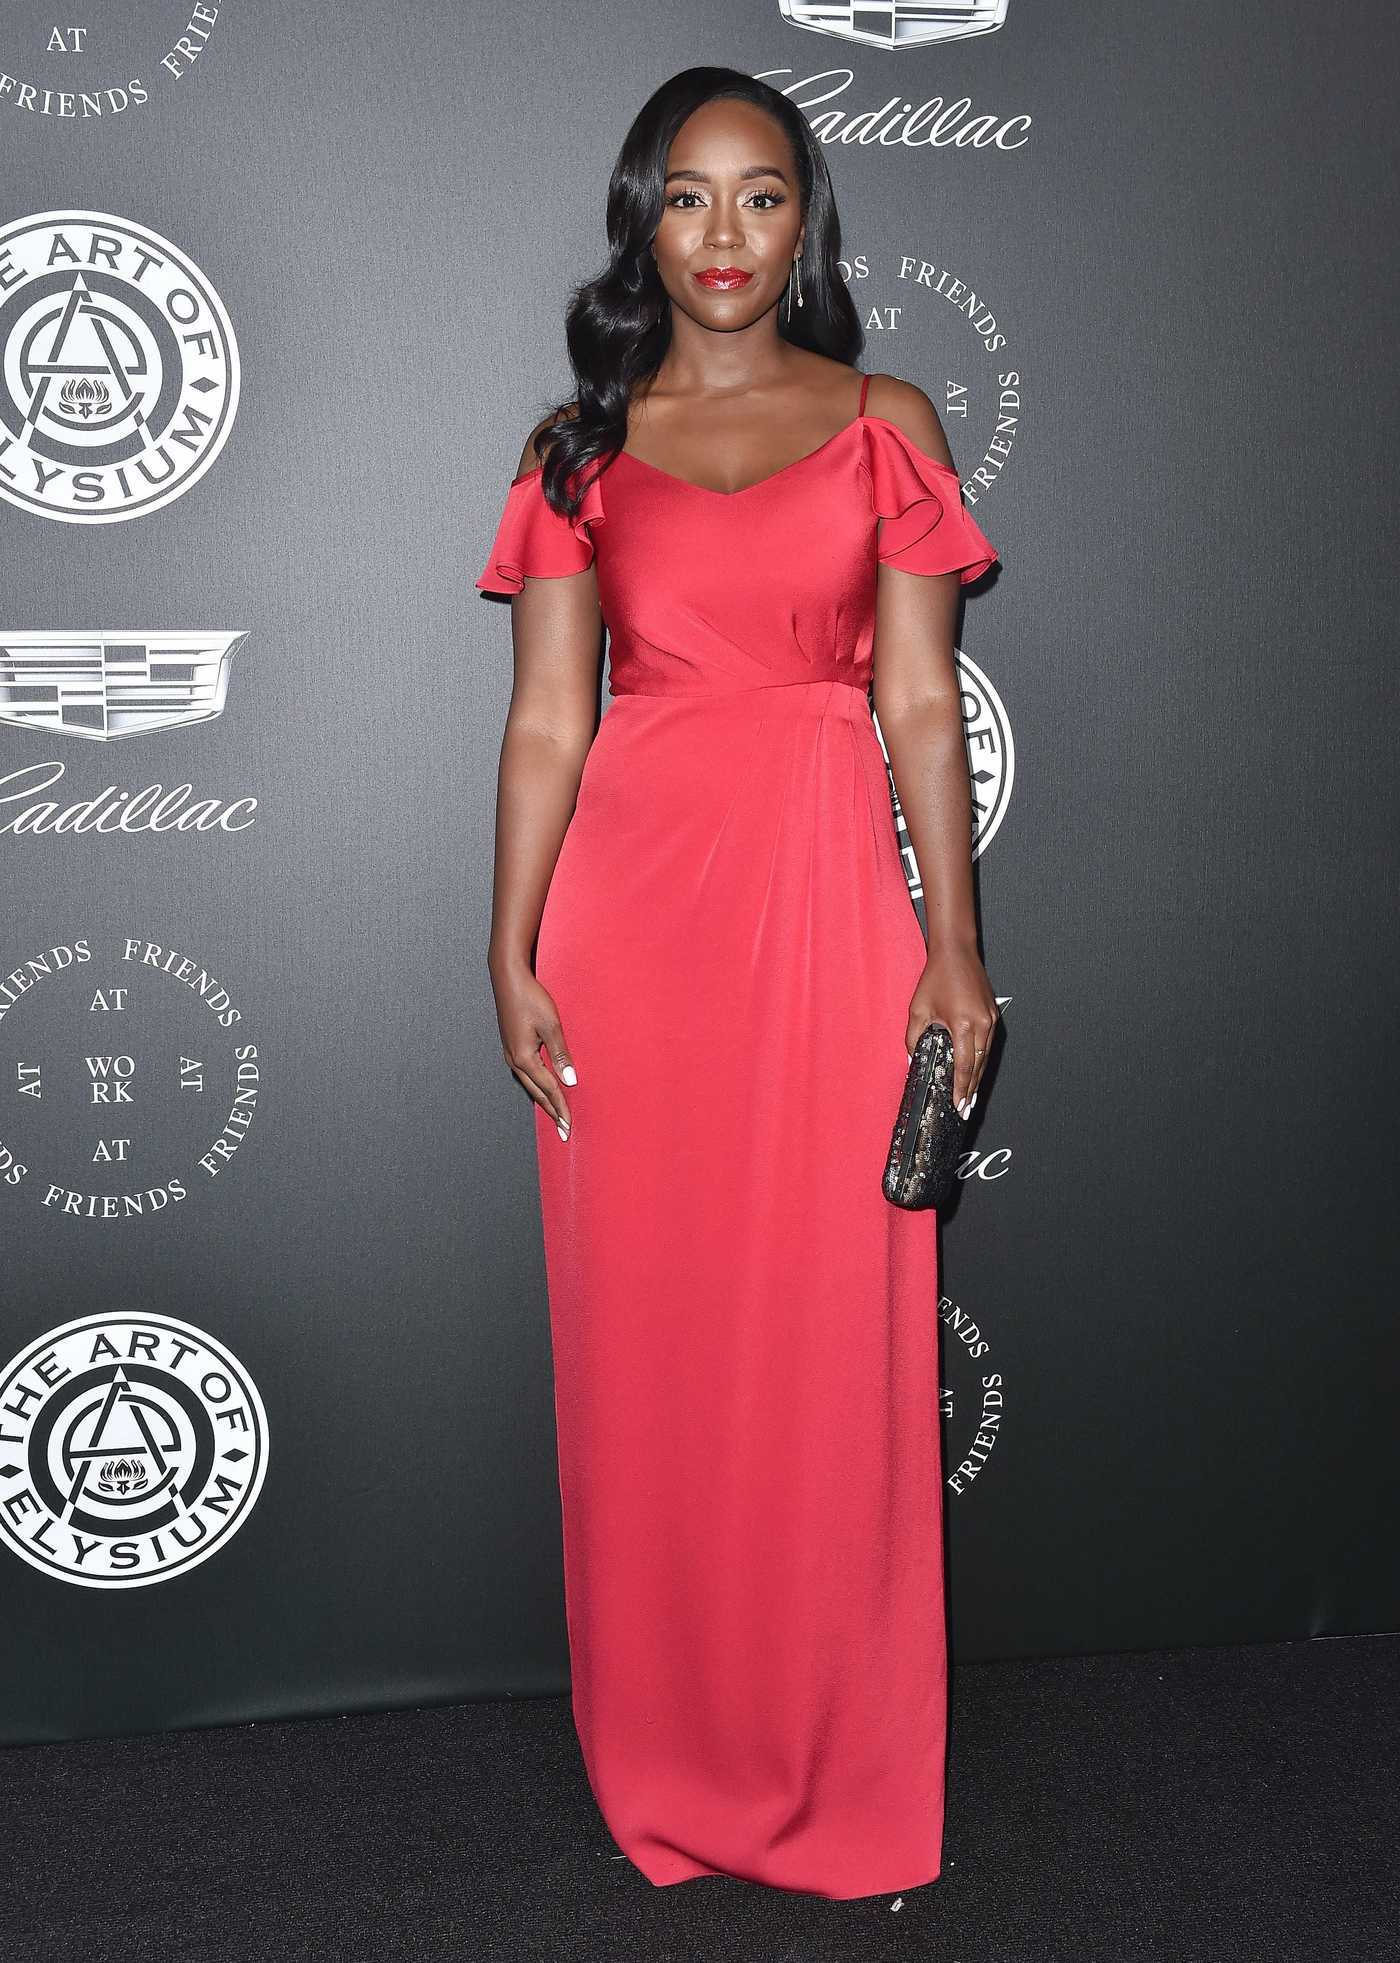 Aja Naomi King at Art of Elysium 11th Annual Heaven Celebration at Barker Hangar in Santa Monica 01/06/2018